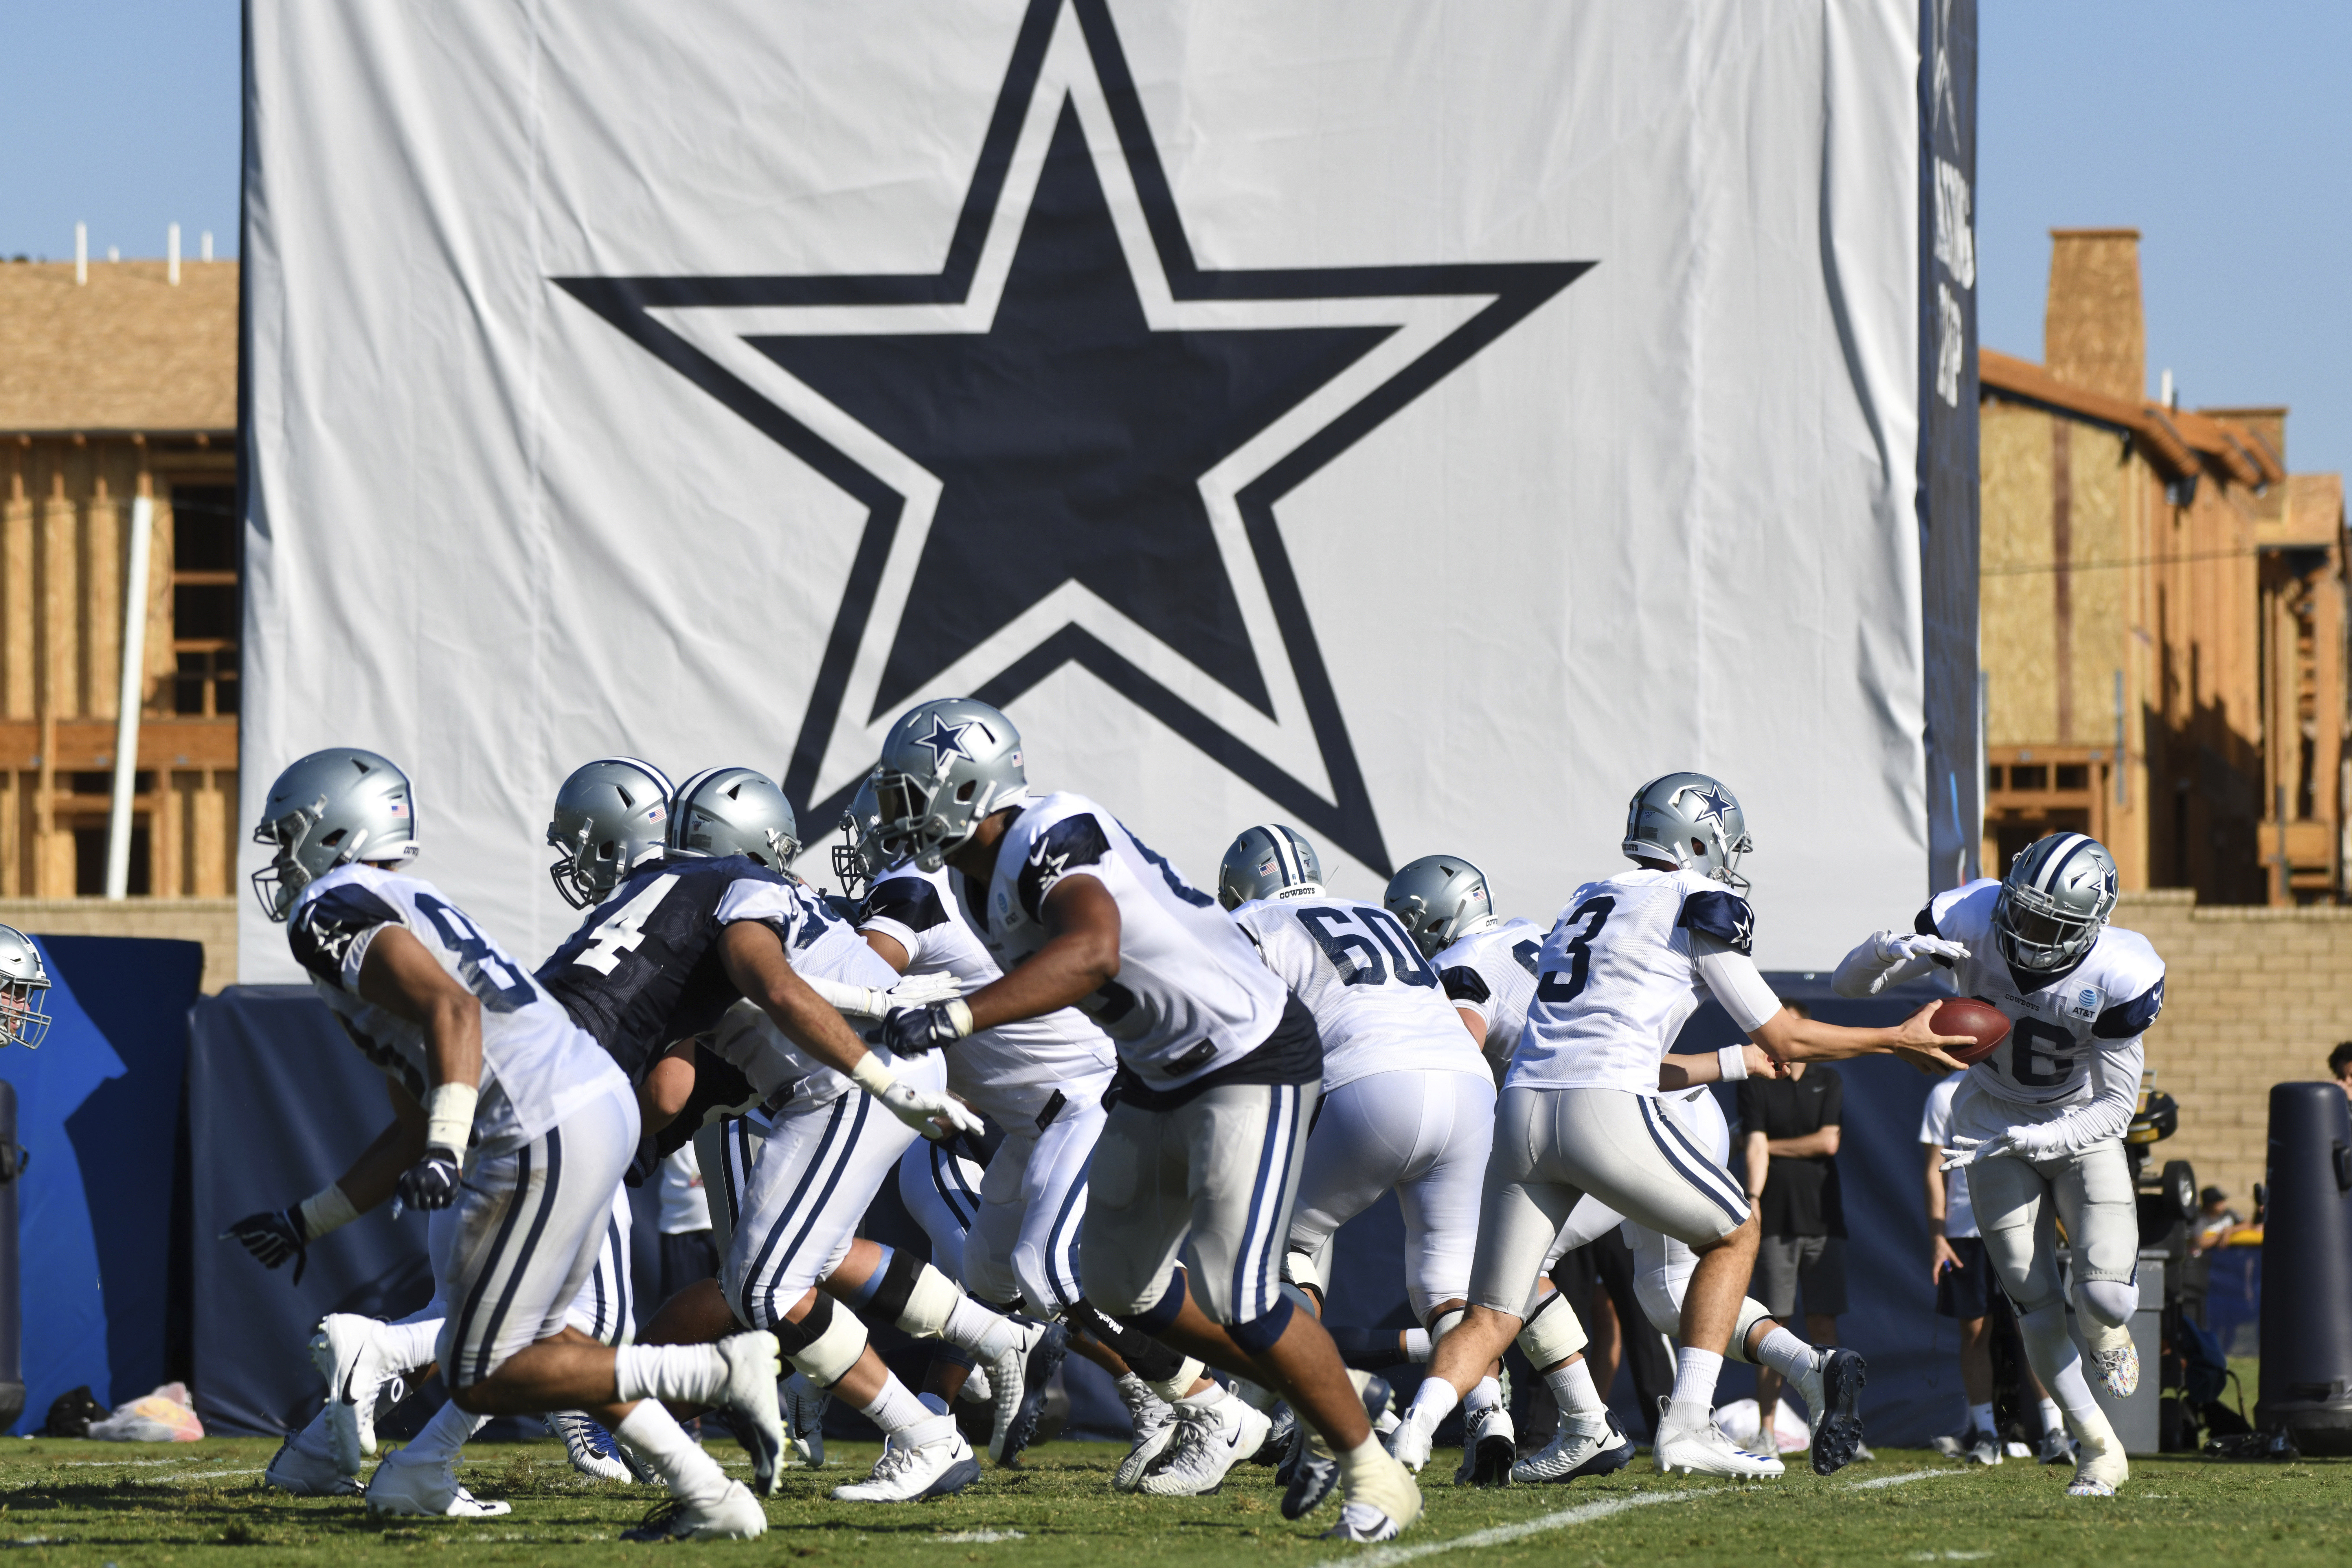 Dallas Cowboys practice at the NFL football team's training camp in Oxnard, Calif. on July 29, 2019.